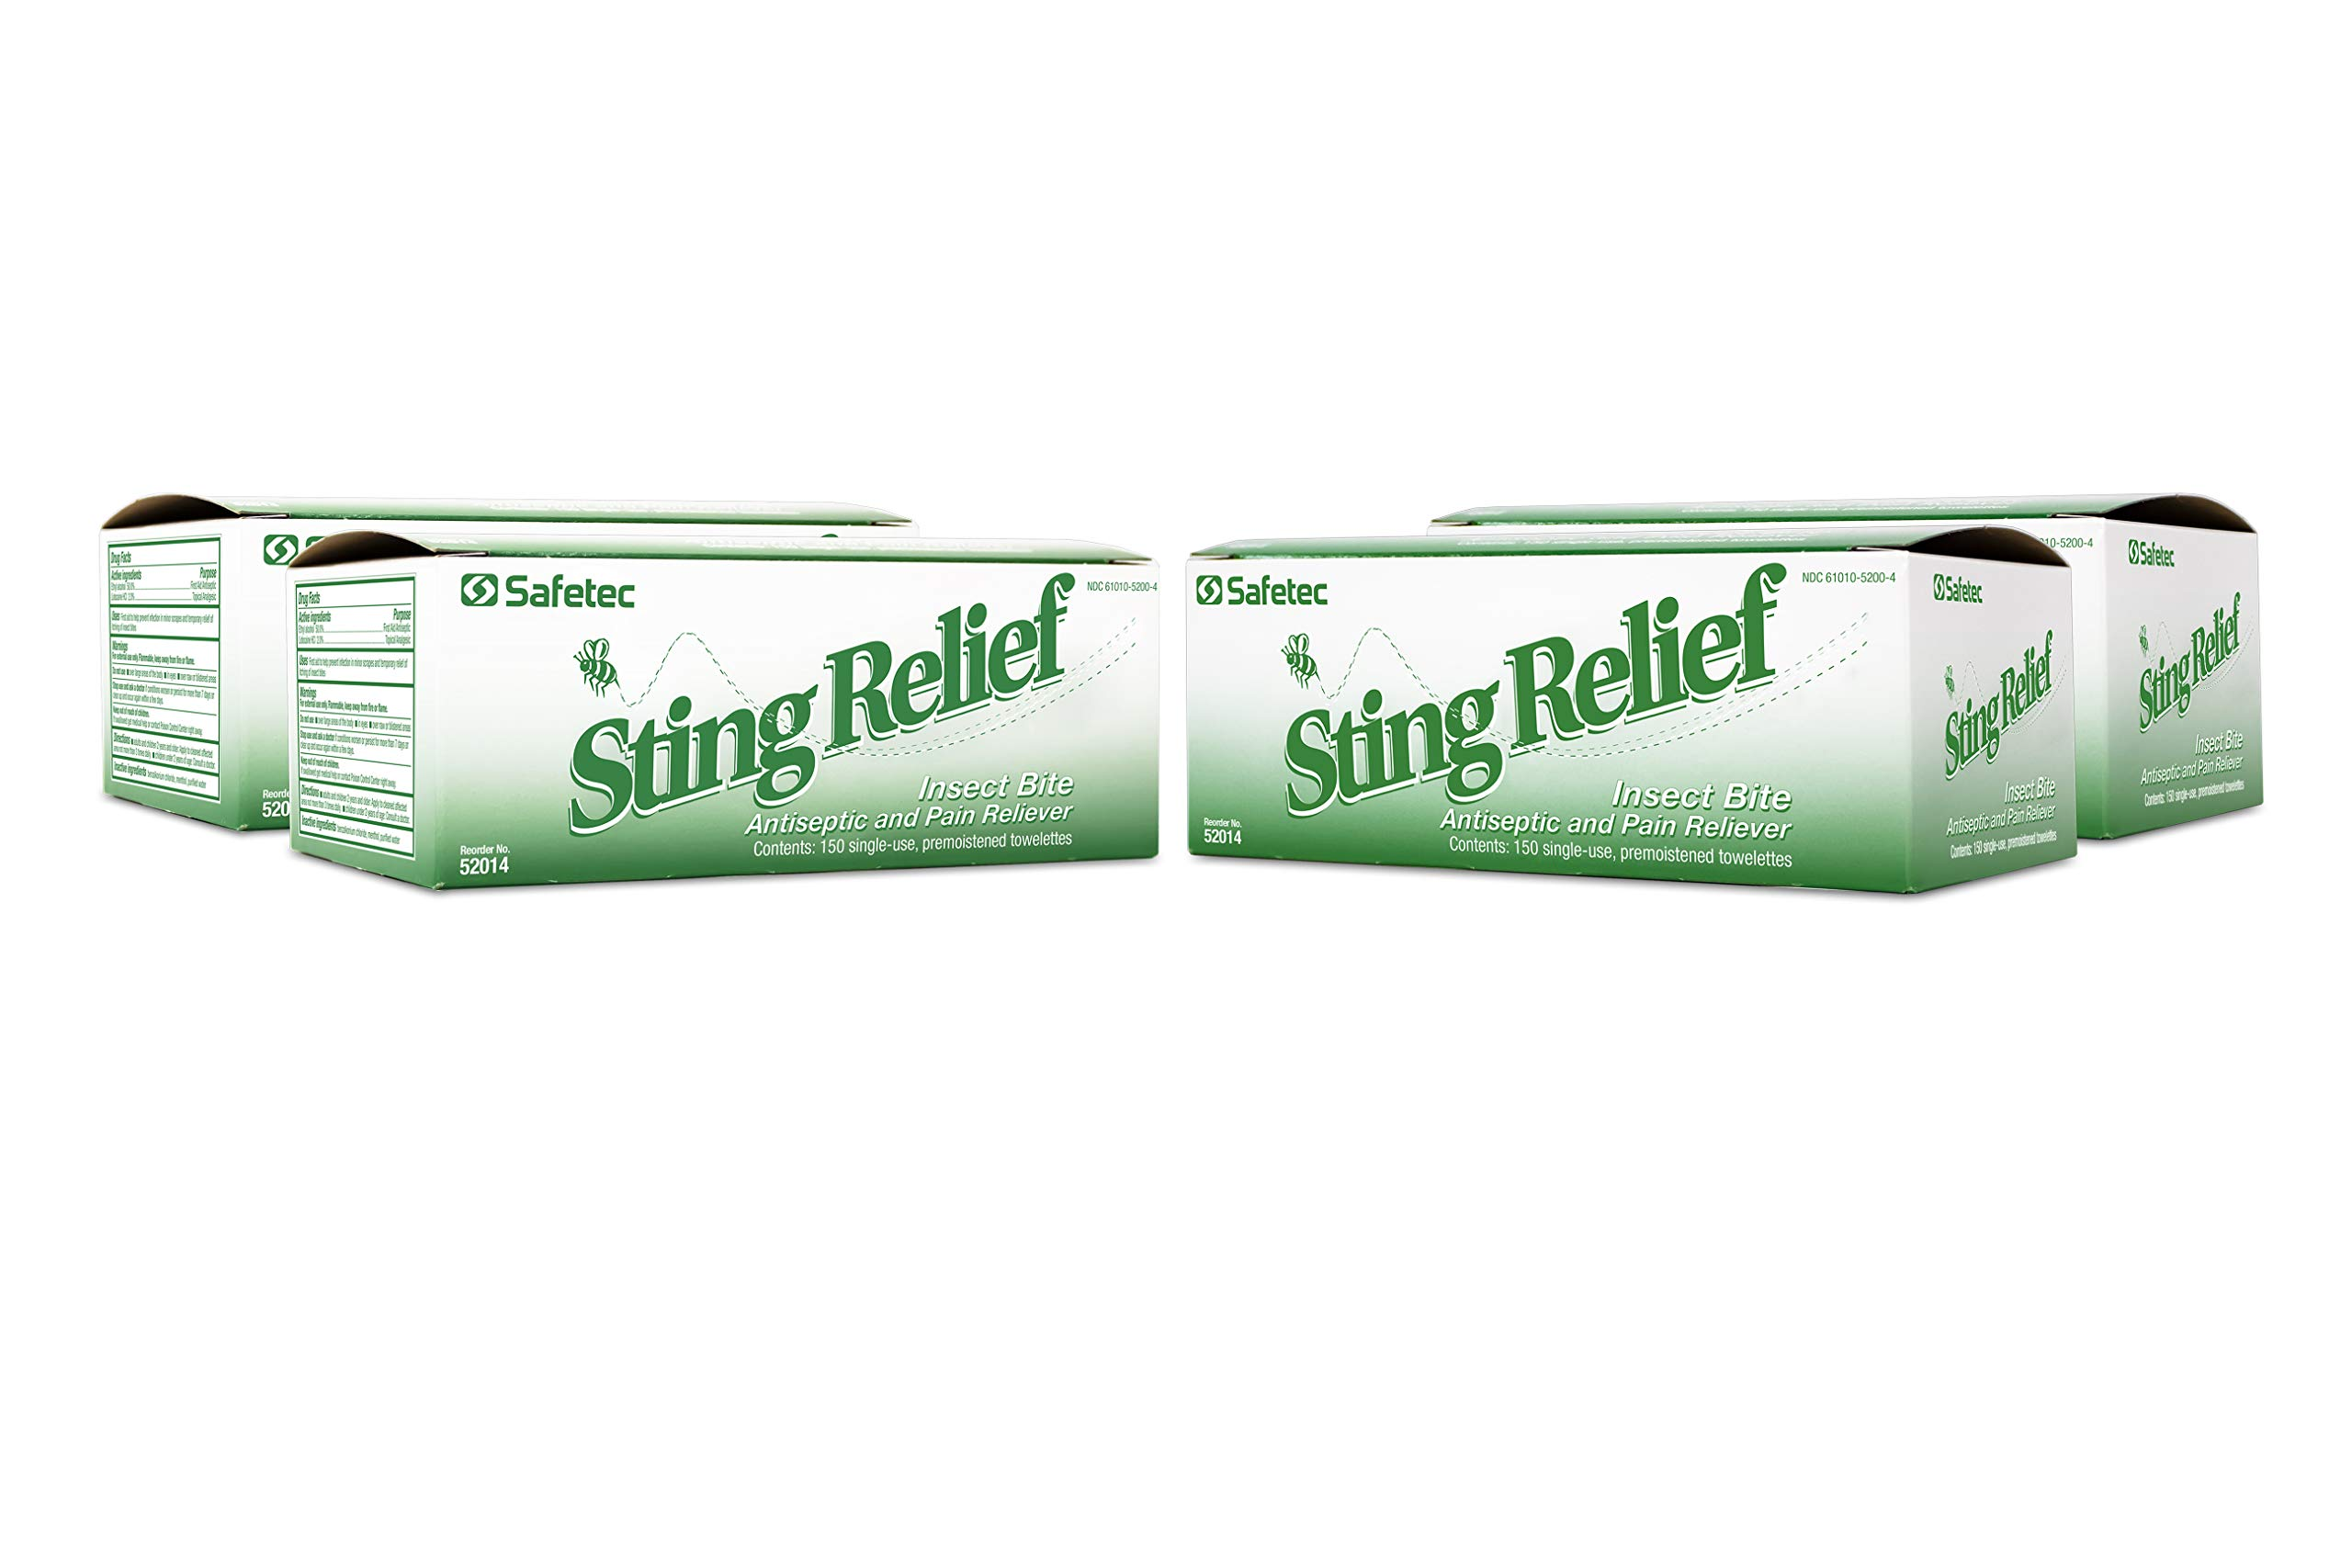 Safetec Sting Relief Wipes 150ct Box (4 Pack of 150ct Wipes - 600 Sting Wipes) for Insect Bites & Stings by Safetec